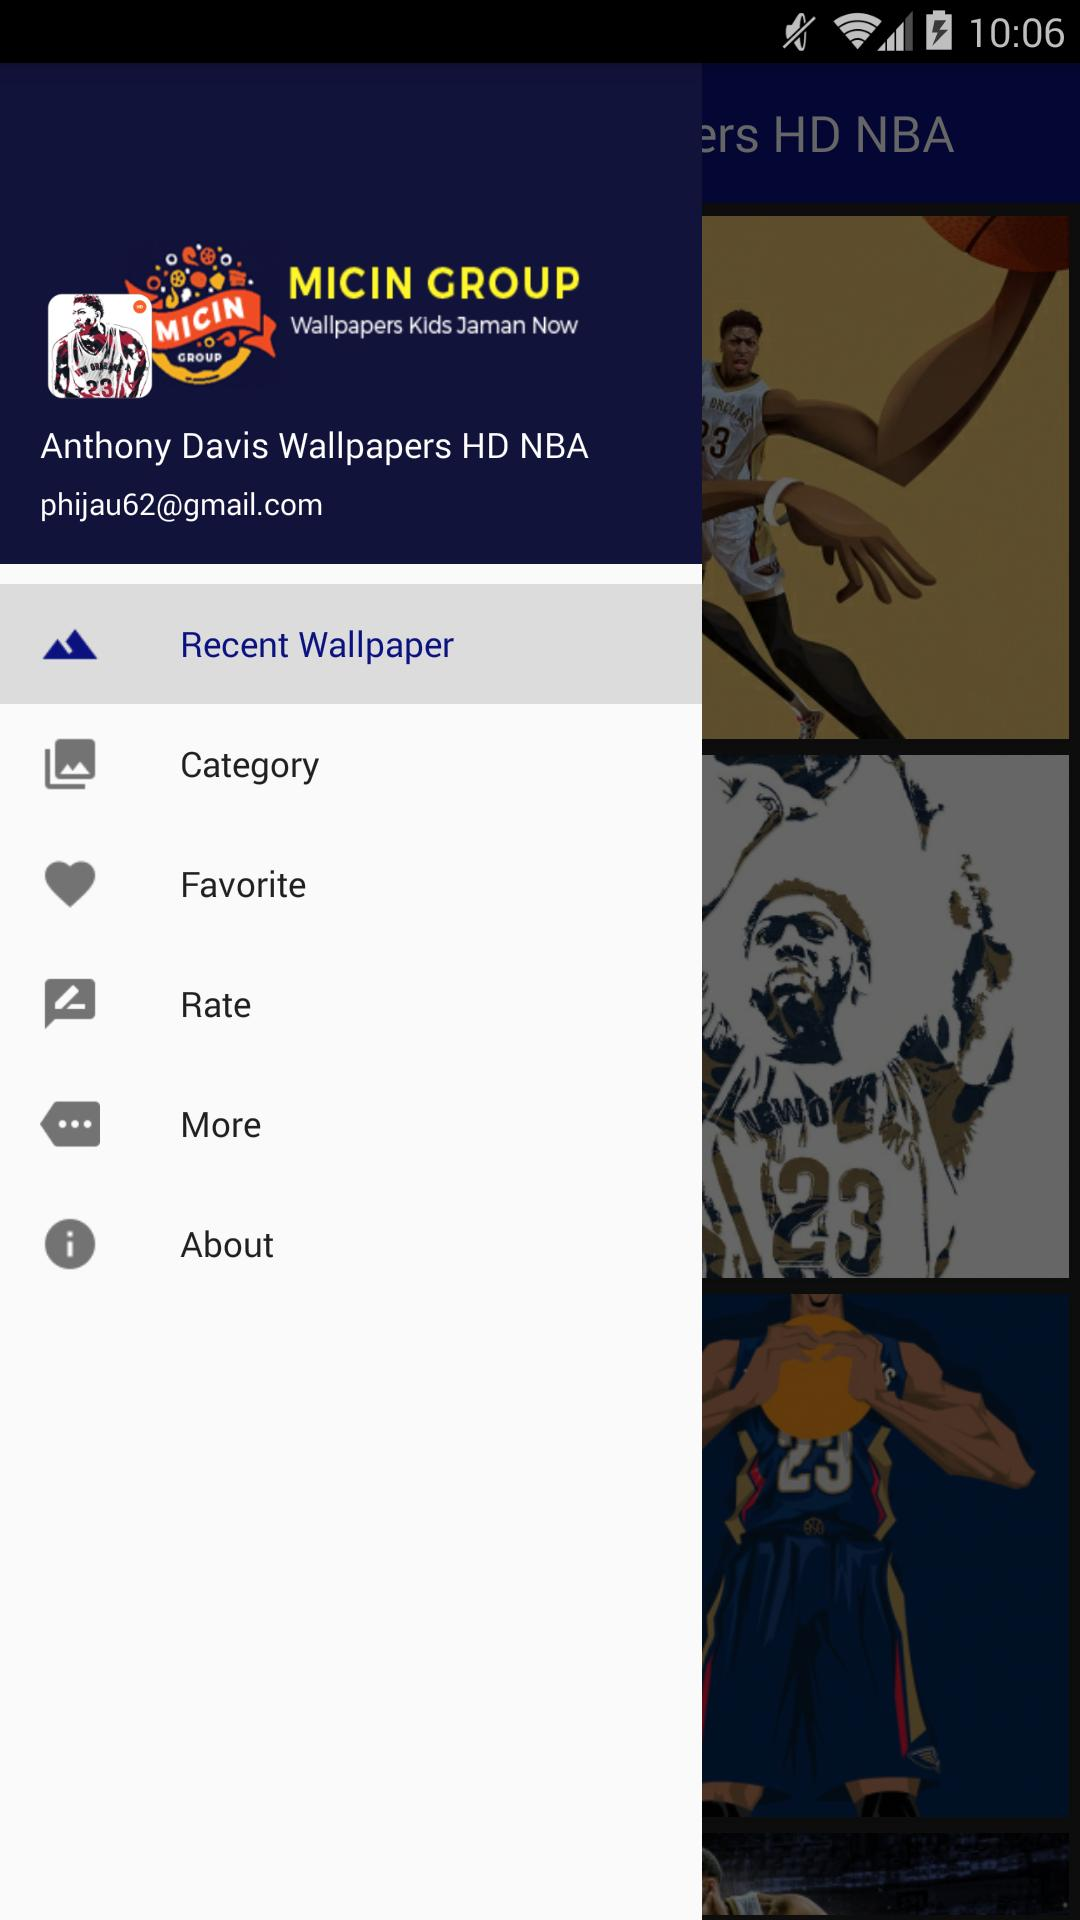 Anthony Davis Wallpapers HD NBA poster